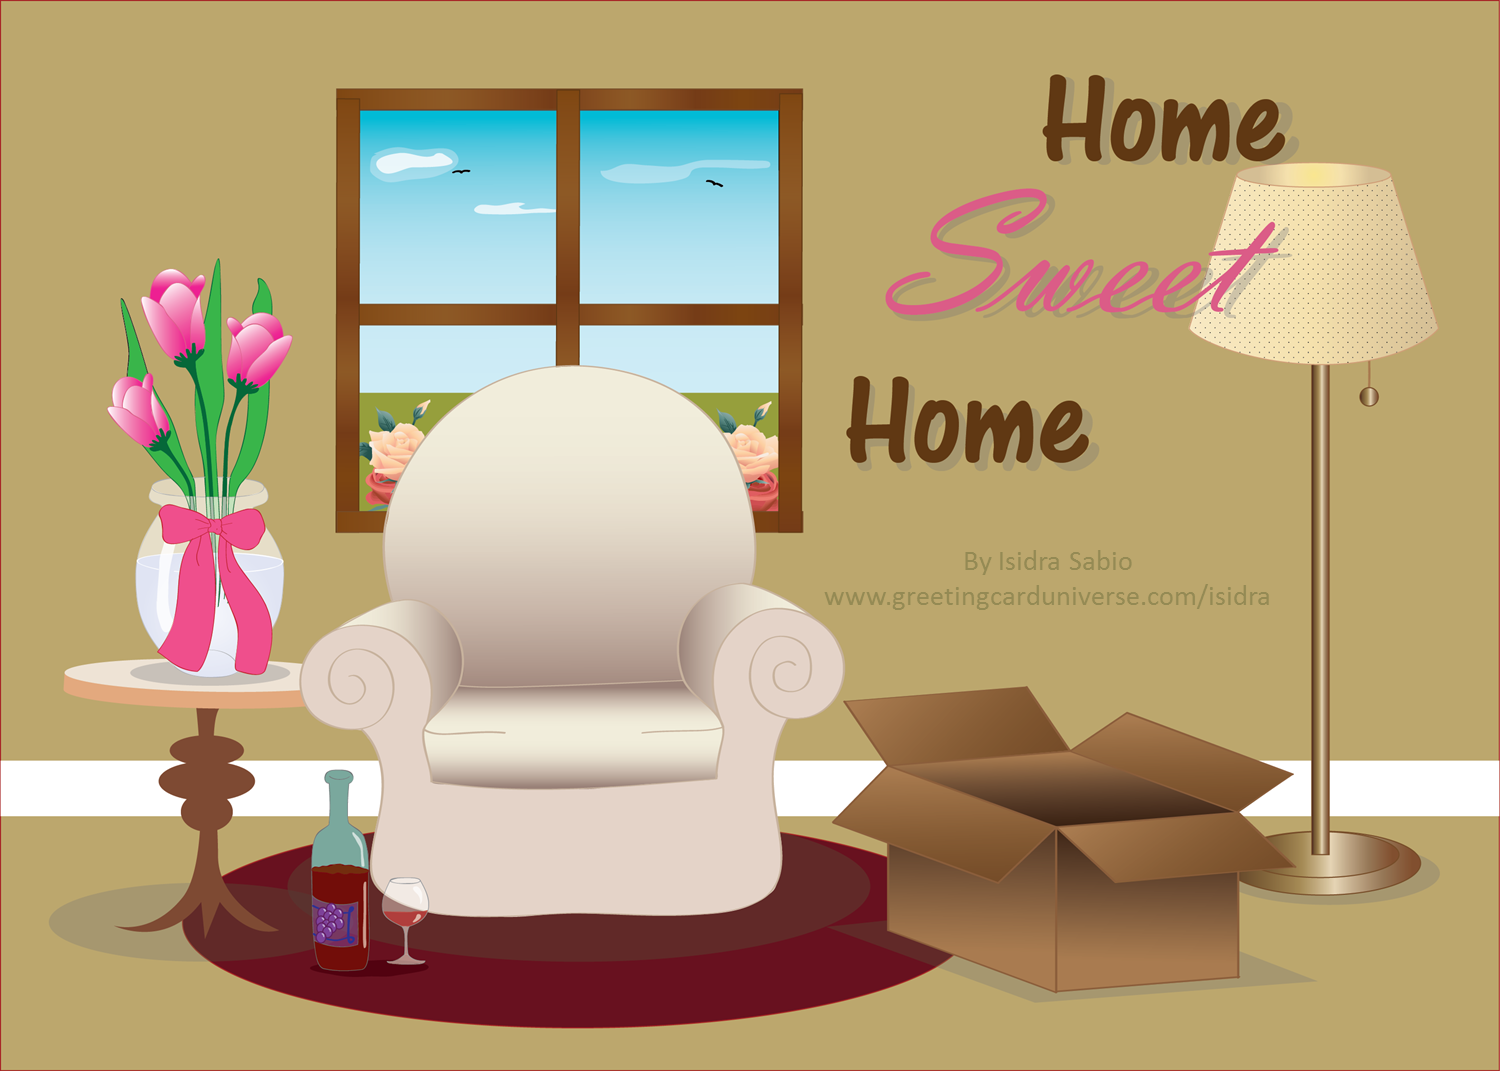 Congratulations on your new home greeting card home sweet home congratulations on your new home greeting card home sweet home elegant house warming kristyandbryce Image collections